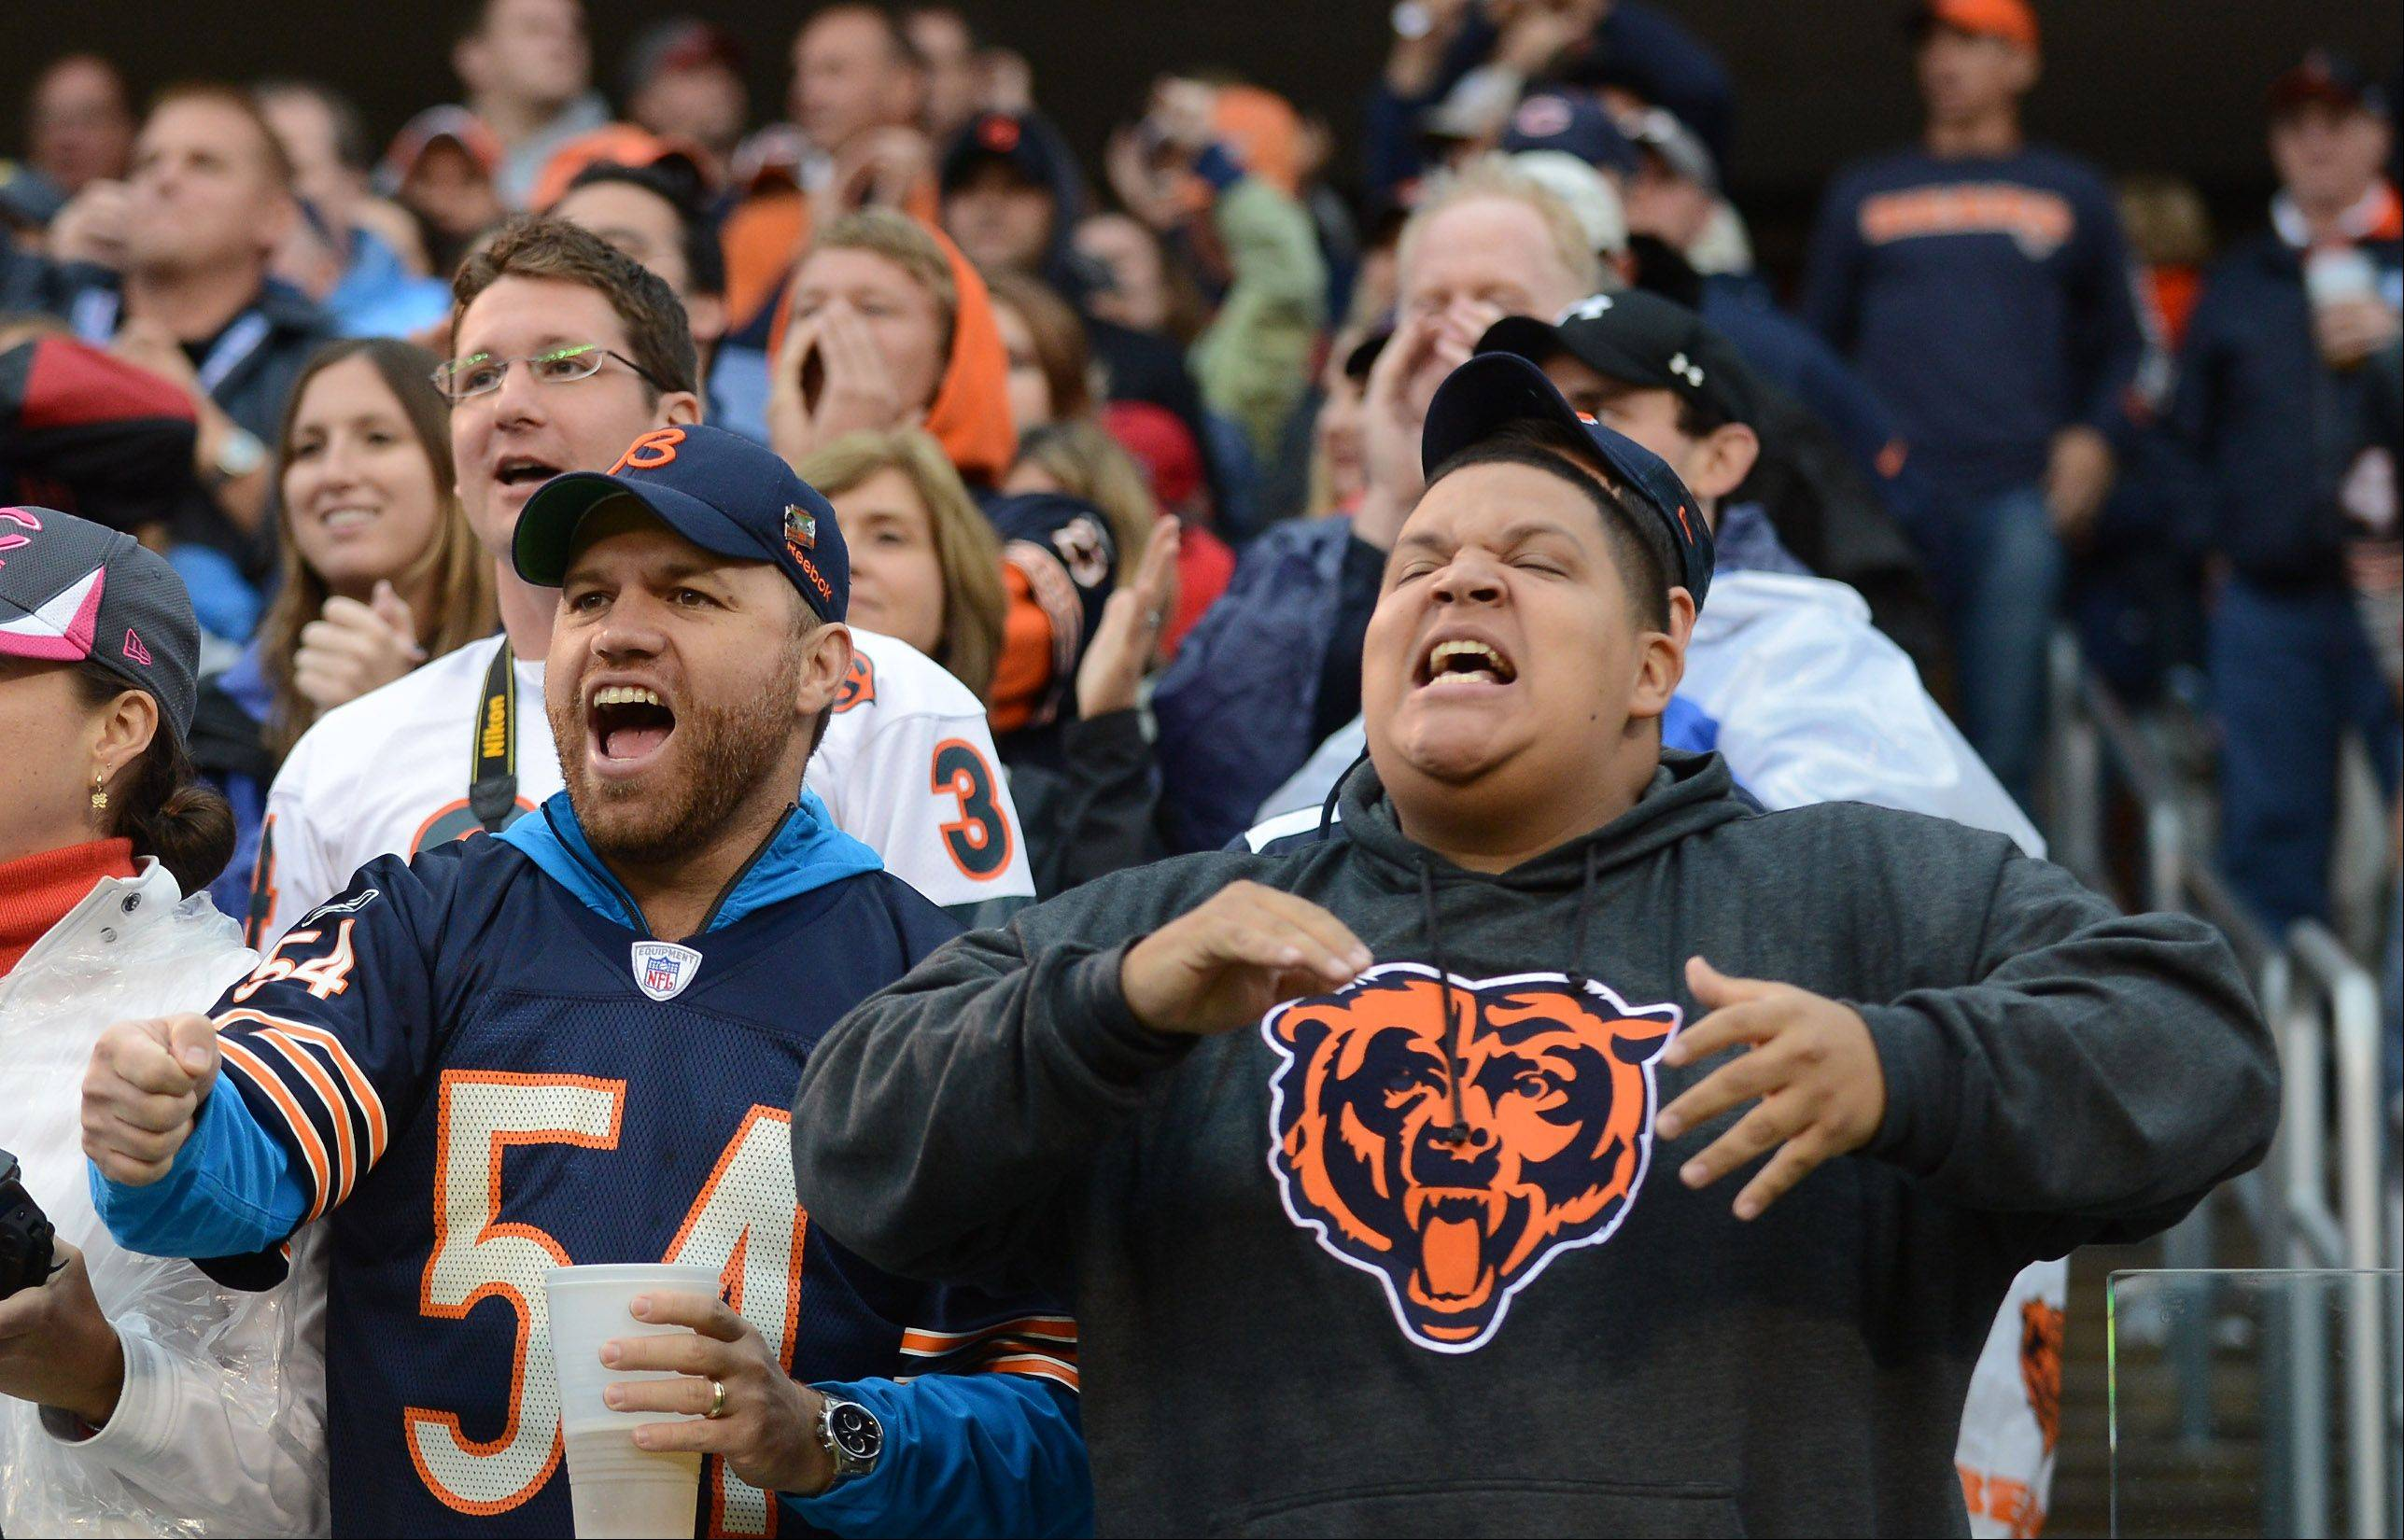 Bears fans try to fire up the defense during Sunday's game at Soldier Field in Chicago.